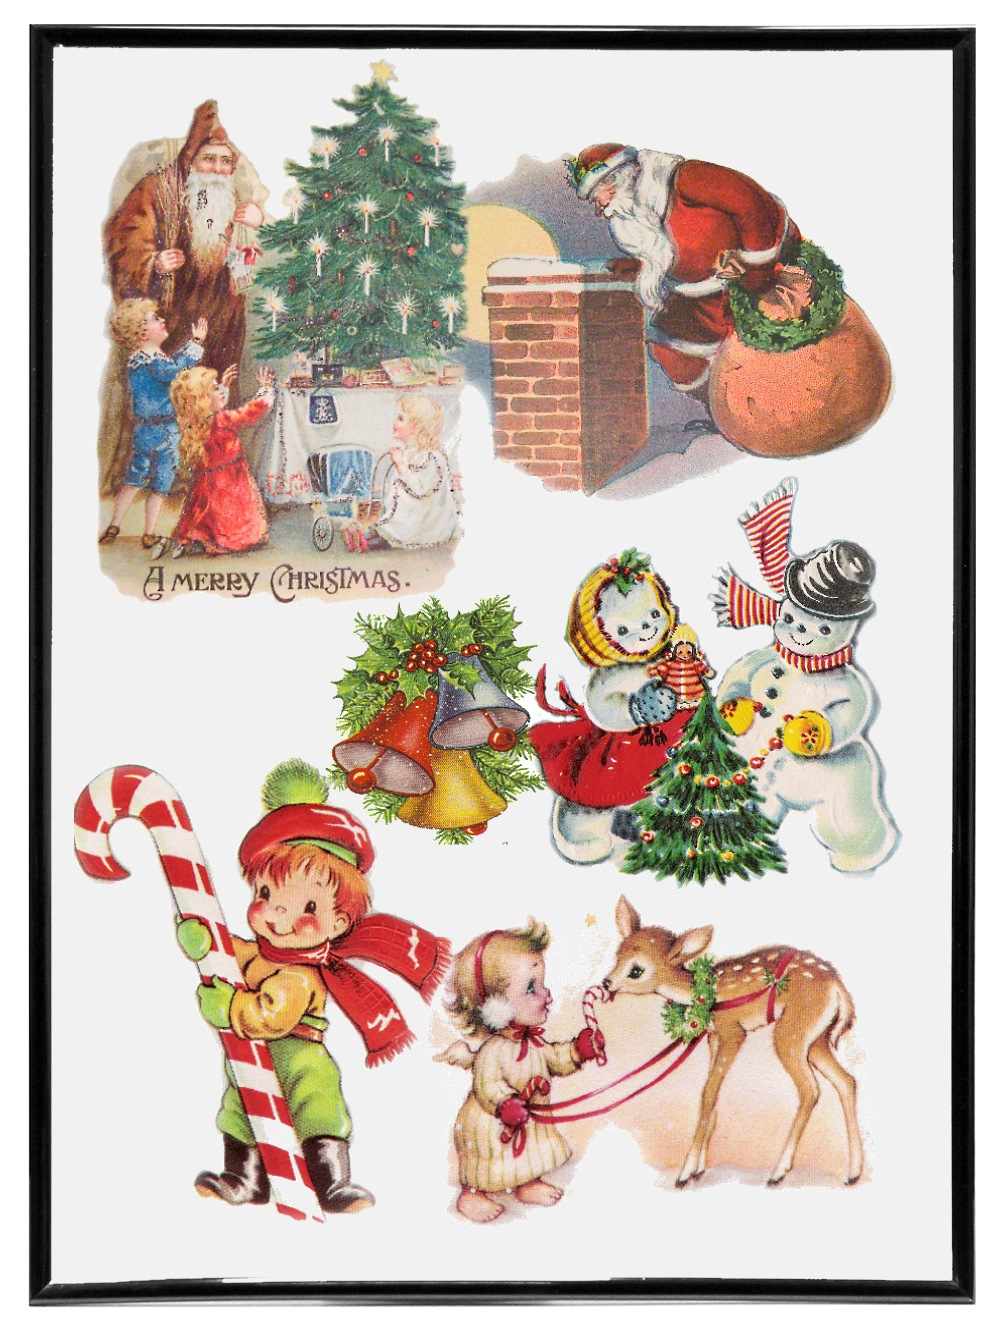 Vintage Christmas.Vintage Christmas Cards Collection Vol 3